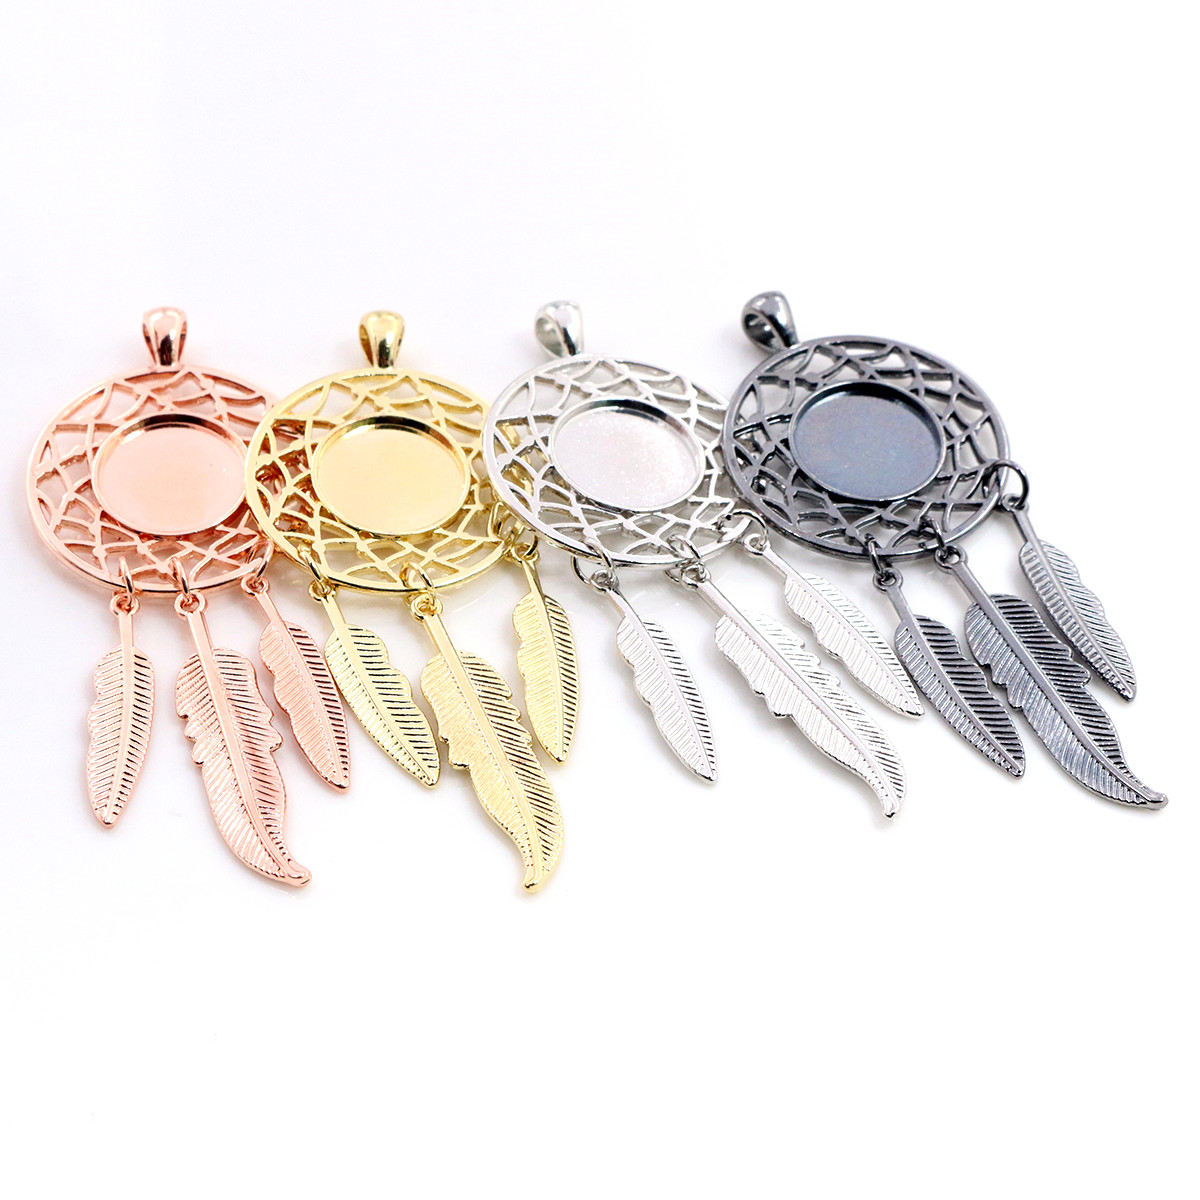 5pcs 14mm Inner Size High Quality Rhodium Gold ColorTree Leaf Feather Wings Fame Style Cabochon Base Cameo Charms Pendant